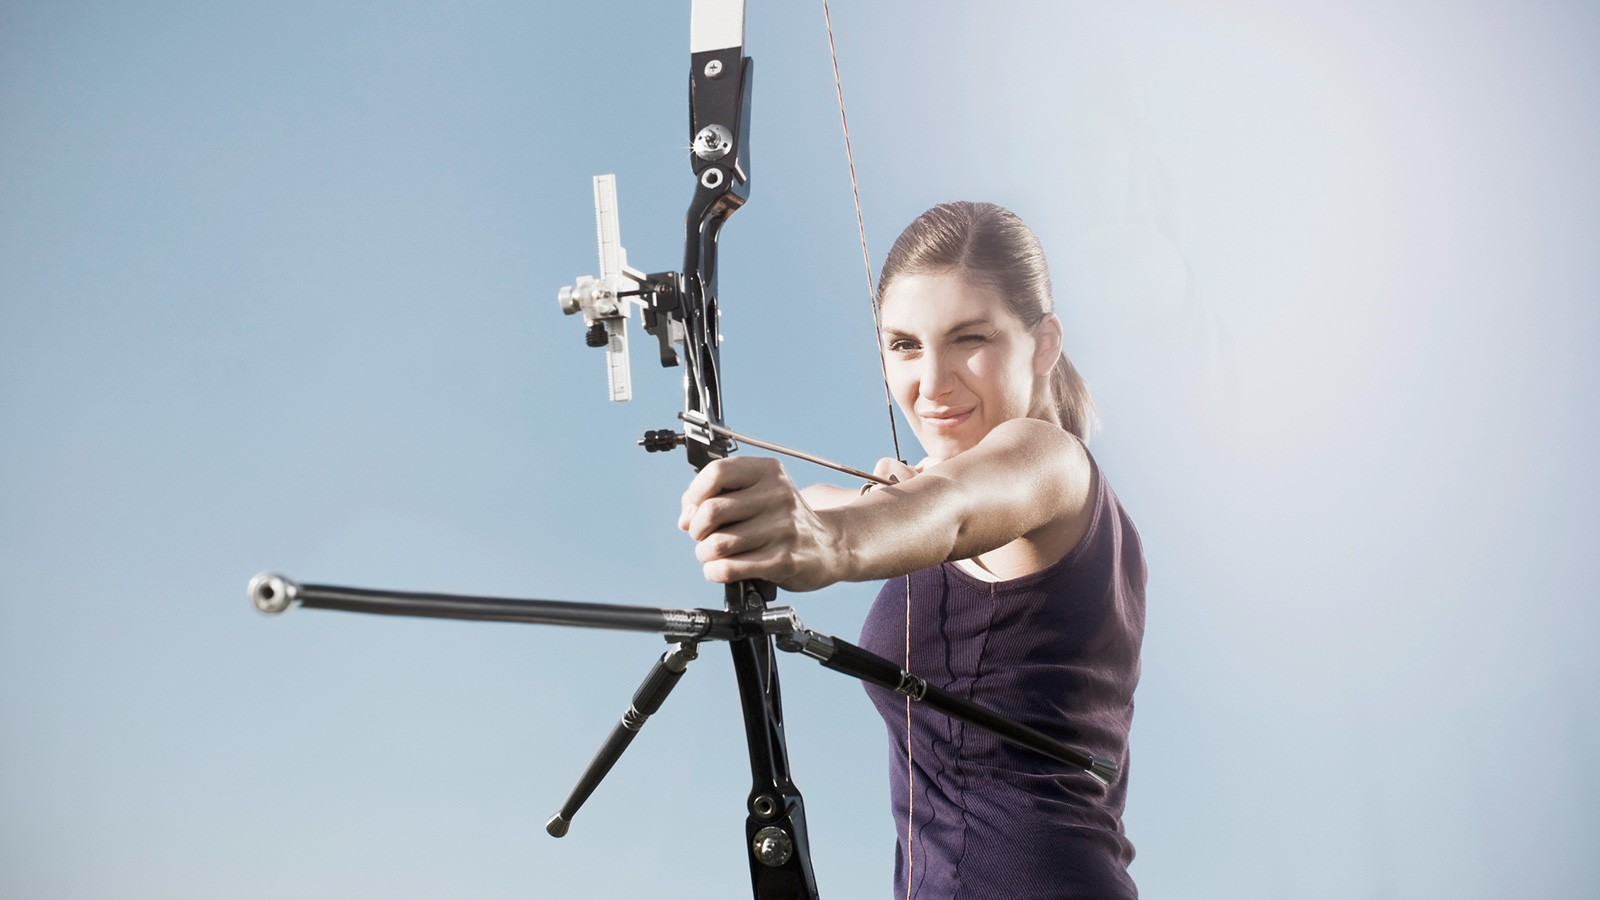 woman archer aiming a bow